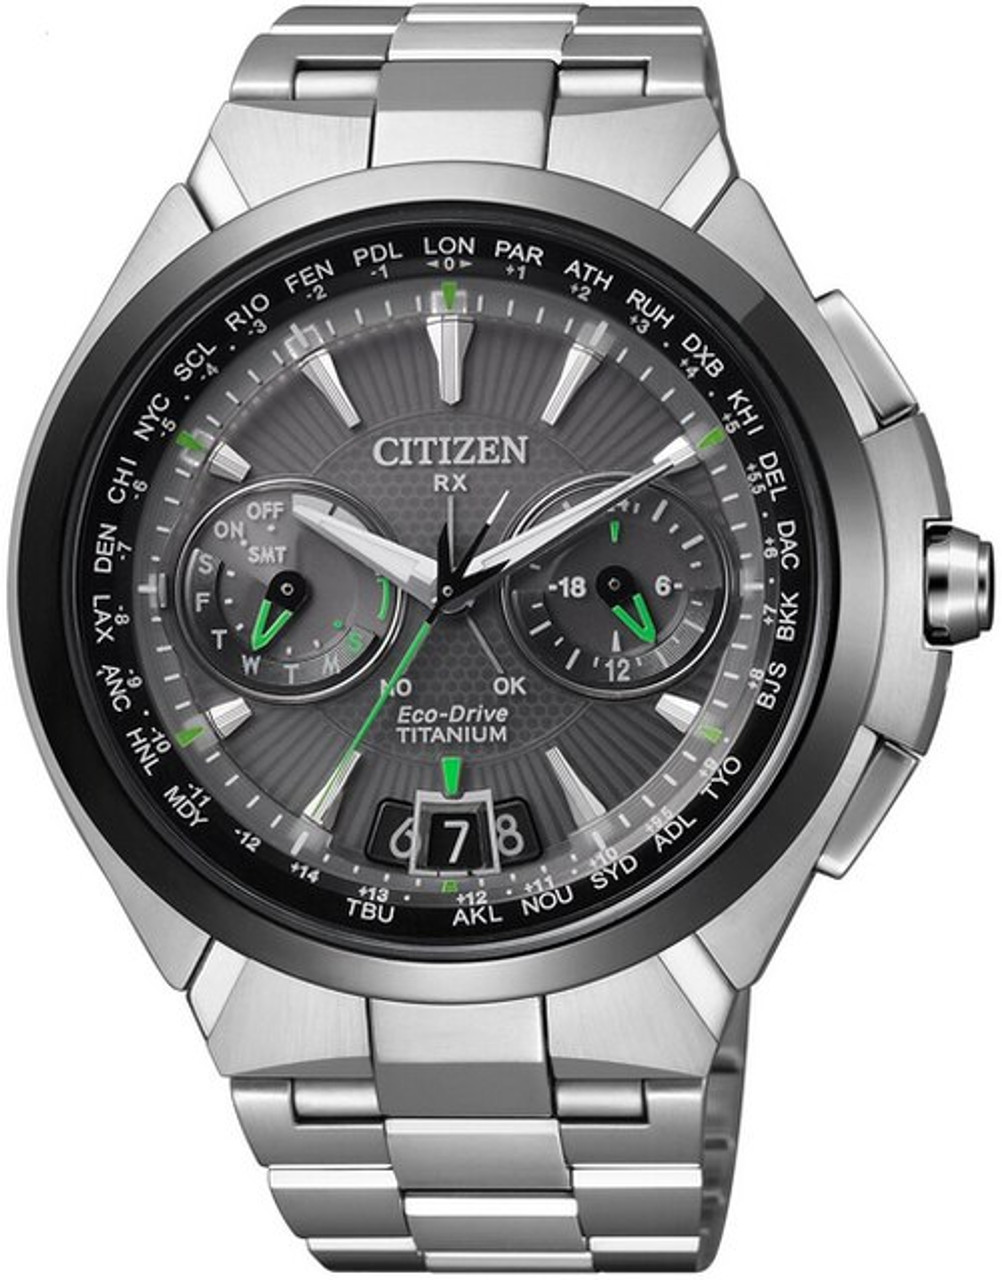 Citizen Attesa CC1086-50E Satellite Wave GPS